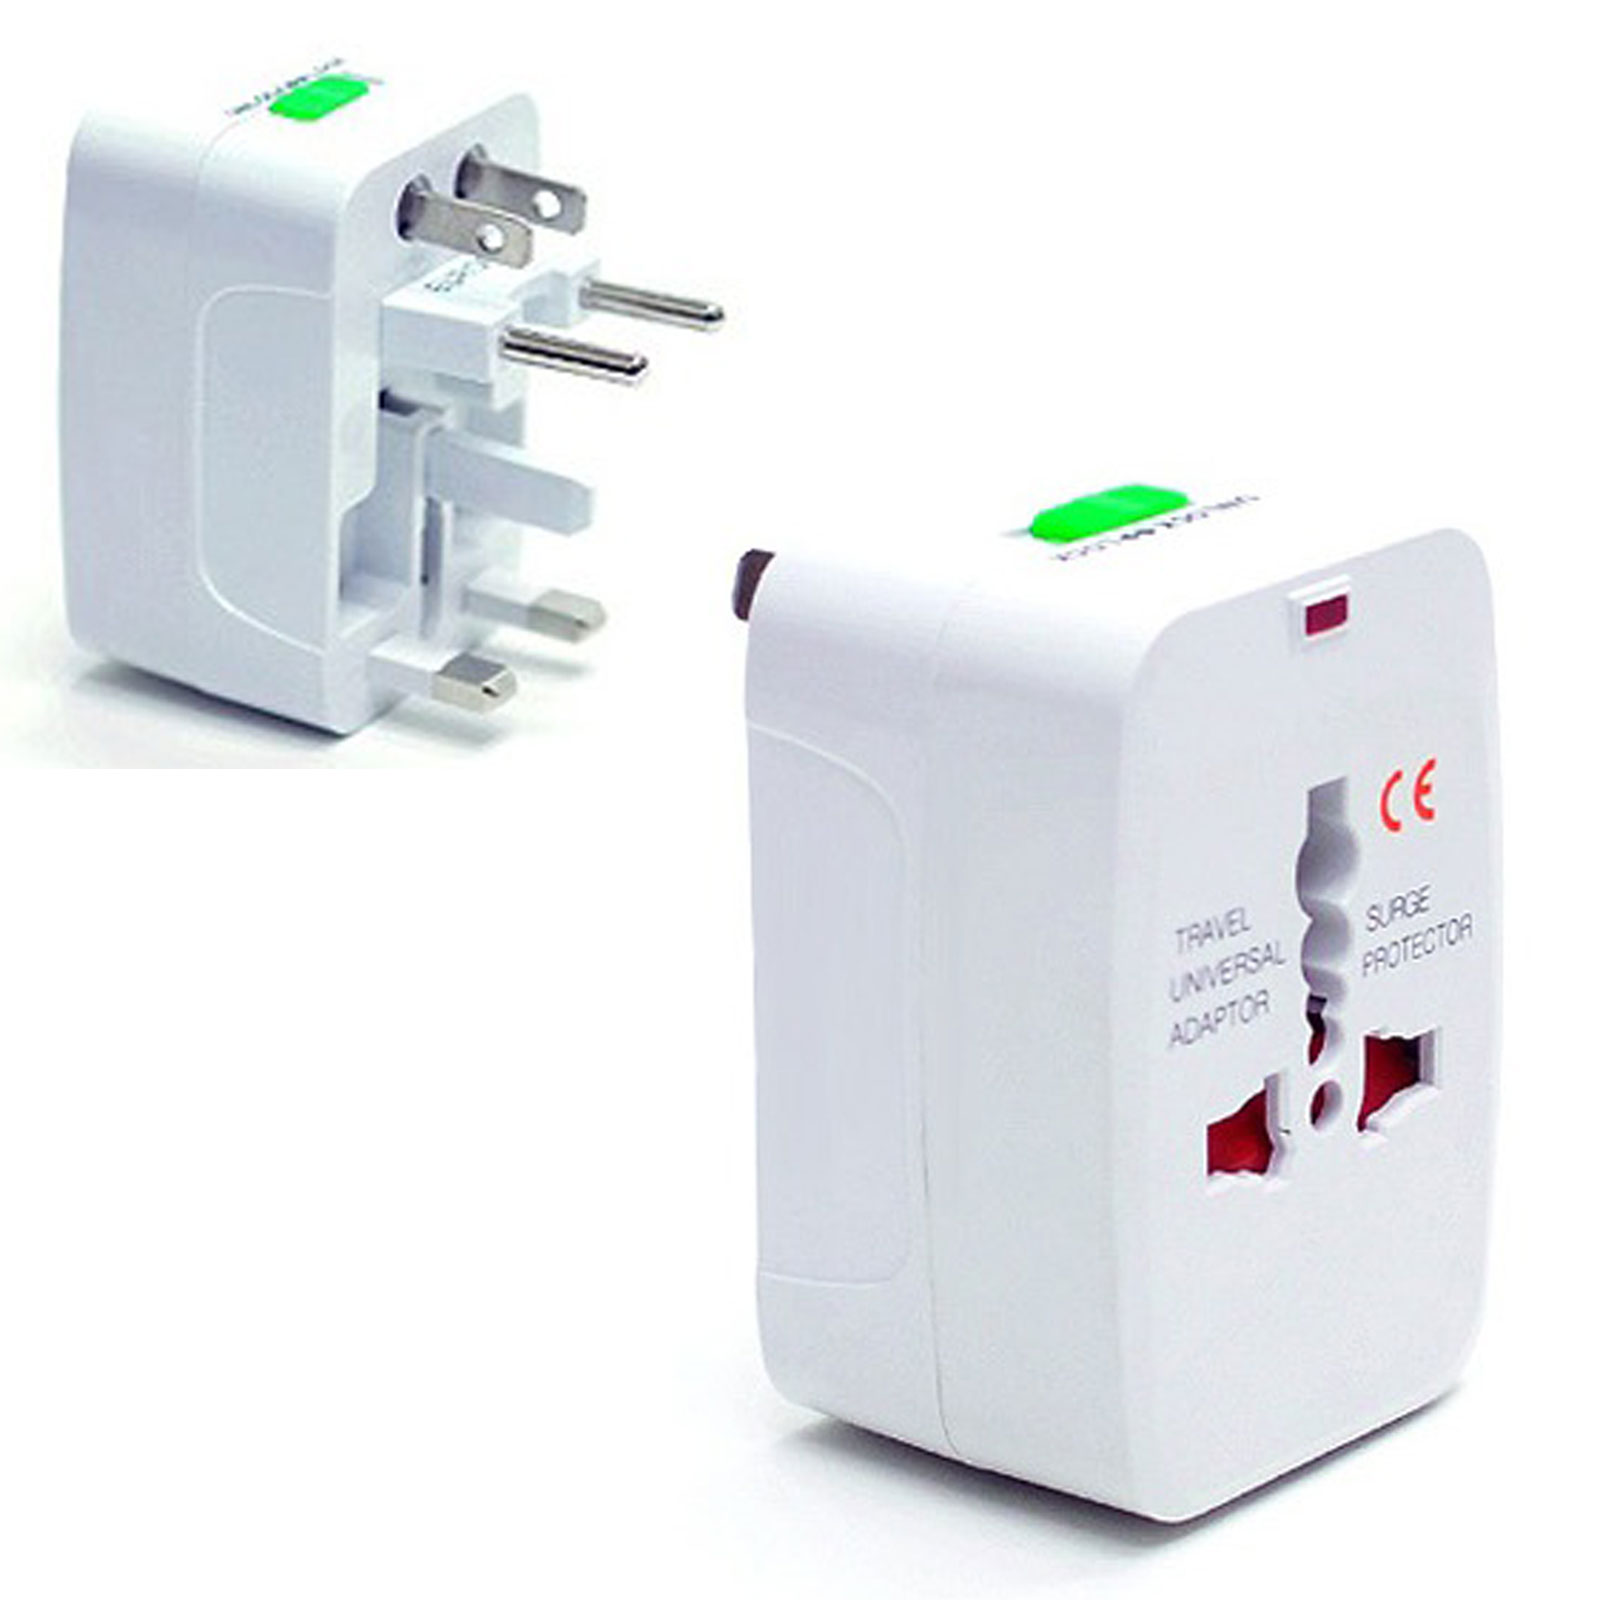 Travel Adapter Plug In Convert 220v To 110v Adapter 2pcs